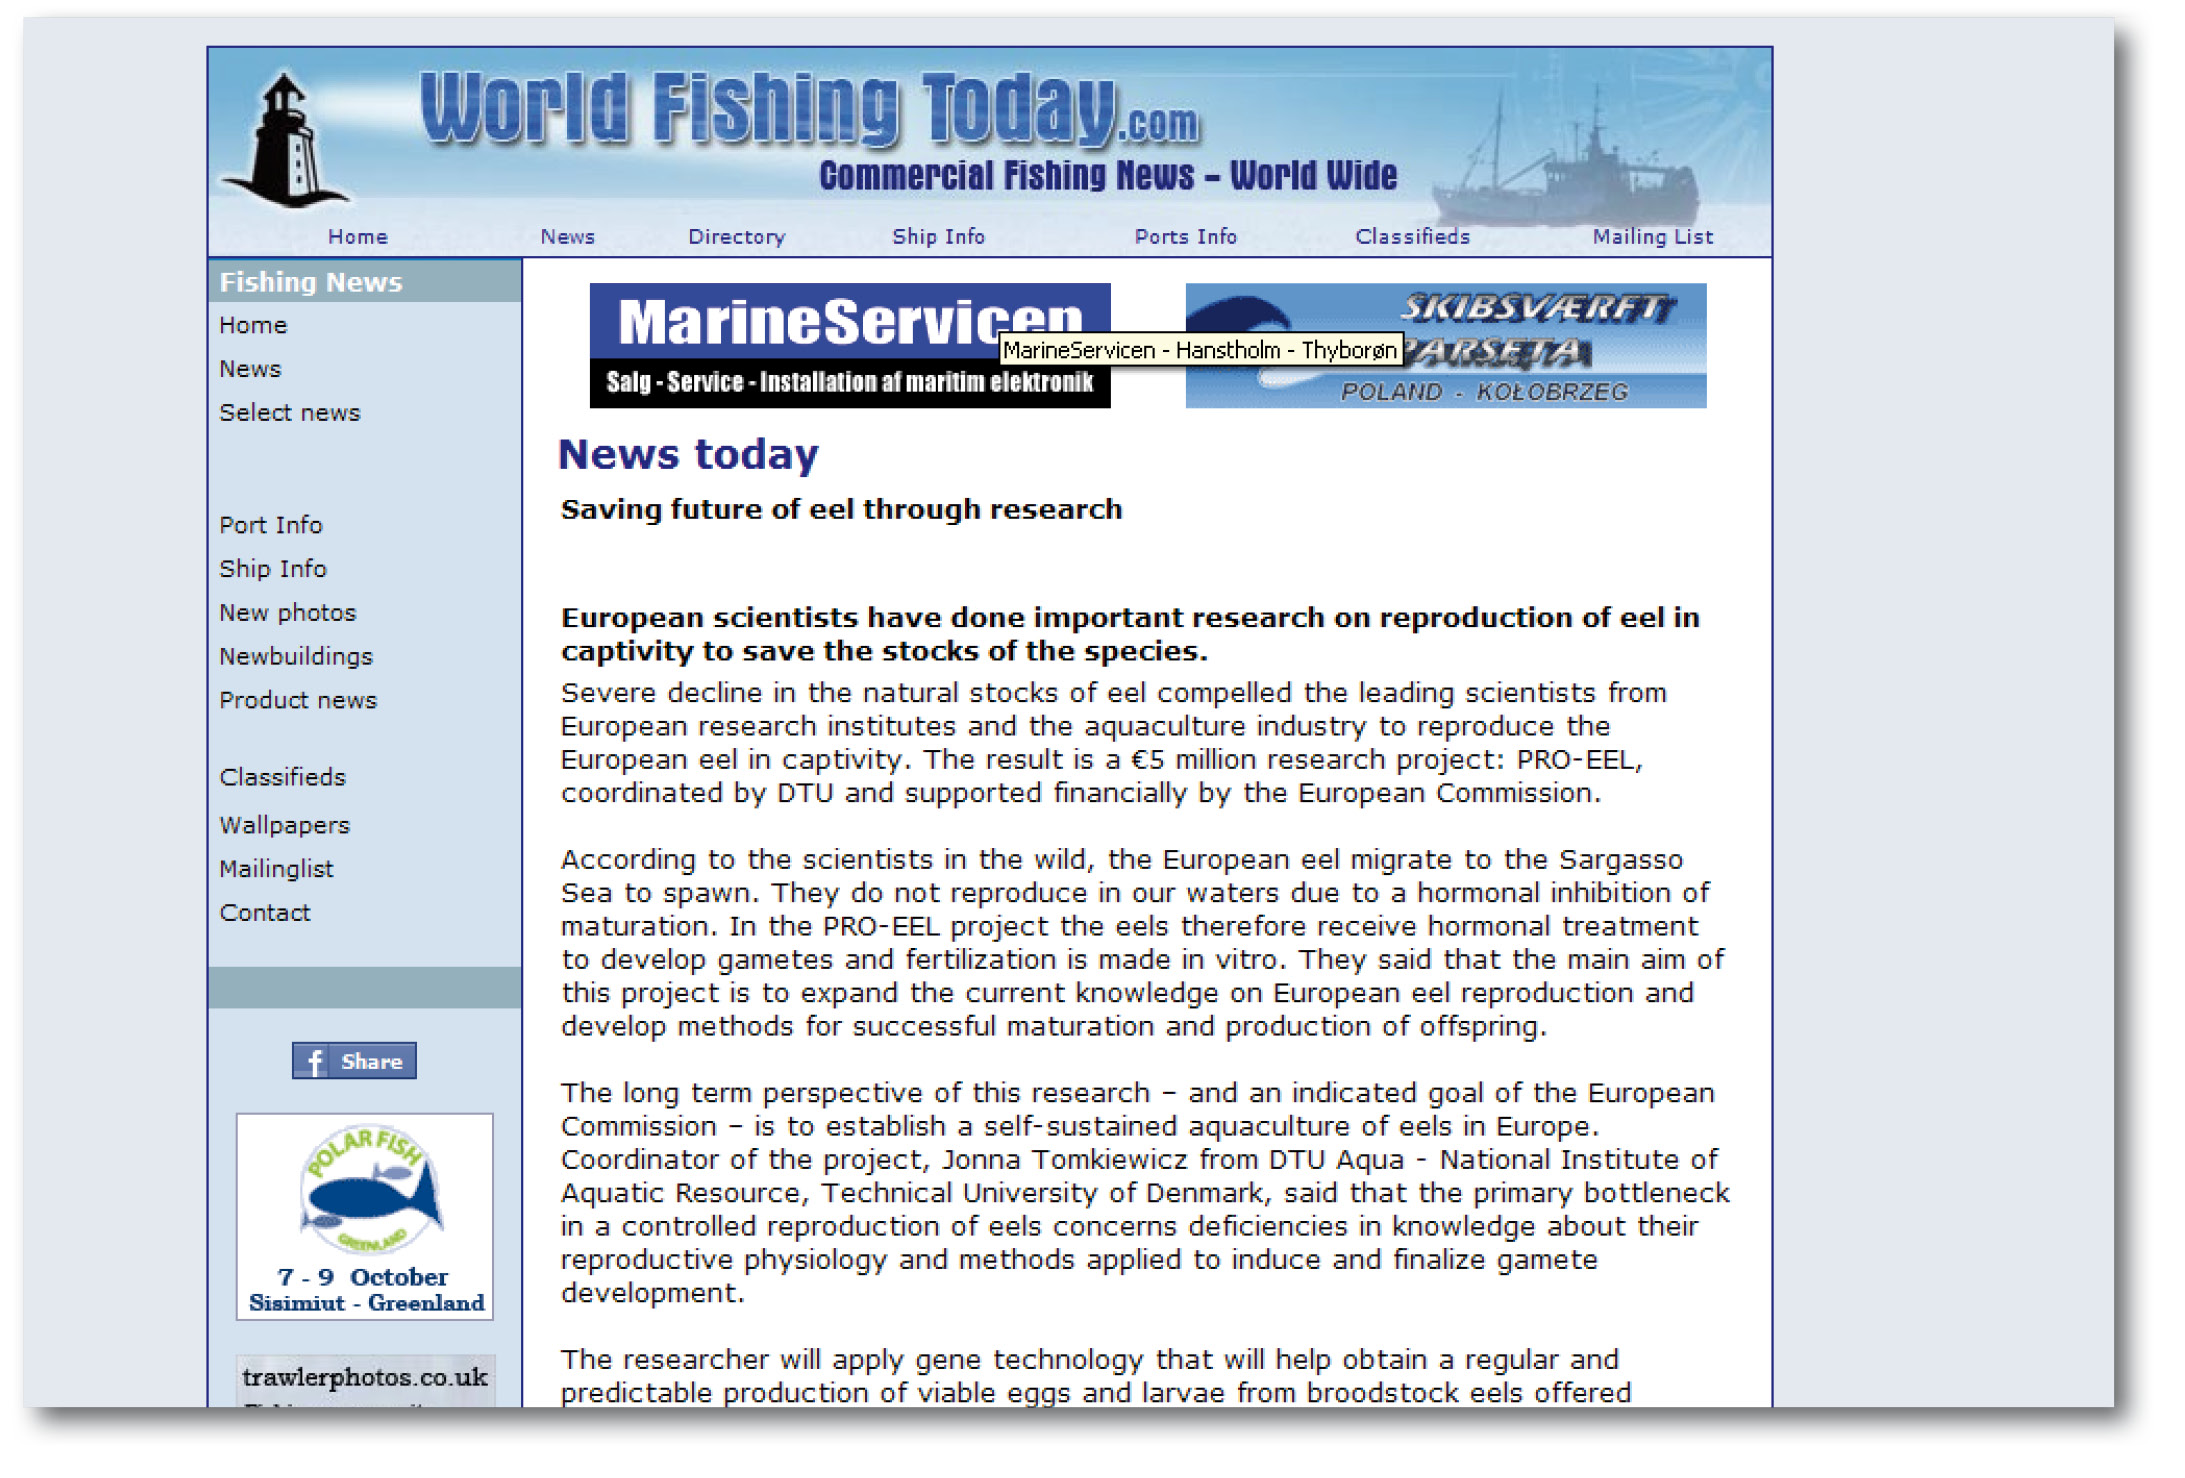 world fishing today 08072010.jpg